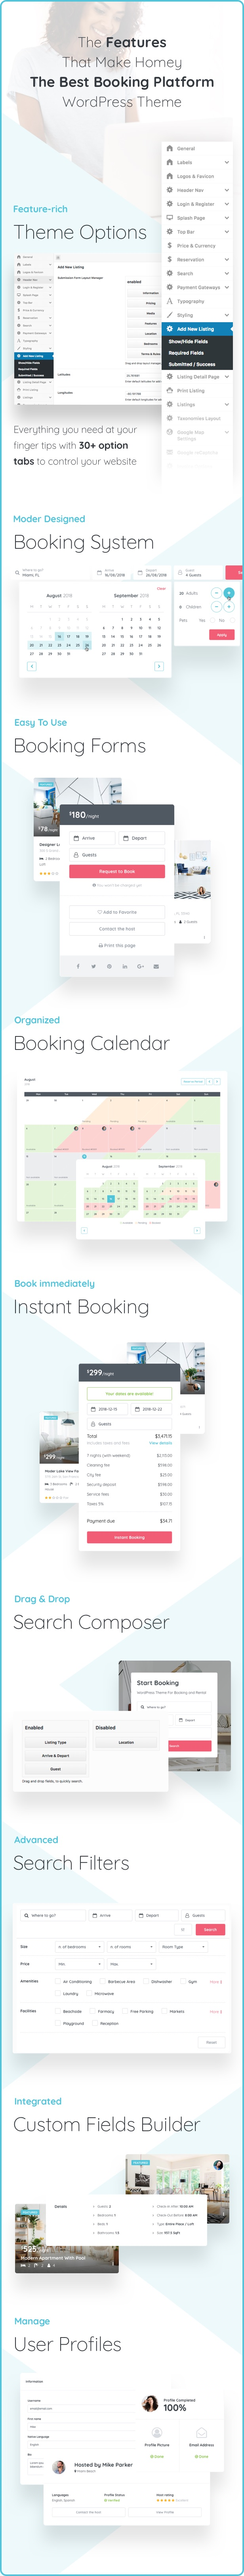 Homey - Booking and Rentals WordPress Theme - 7